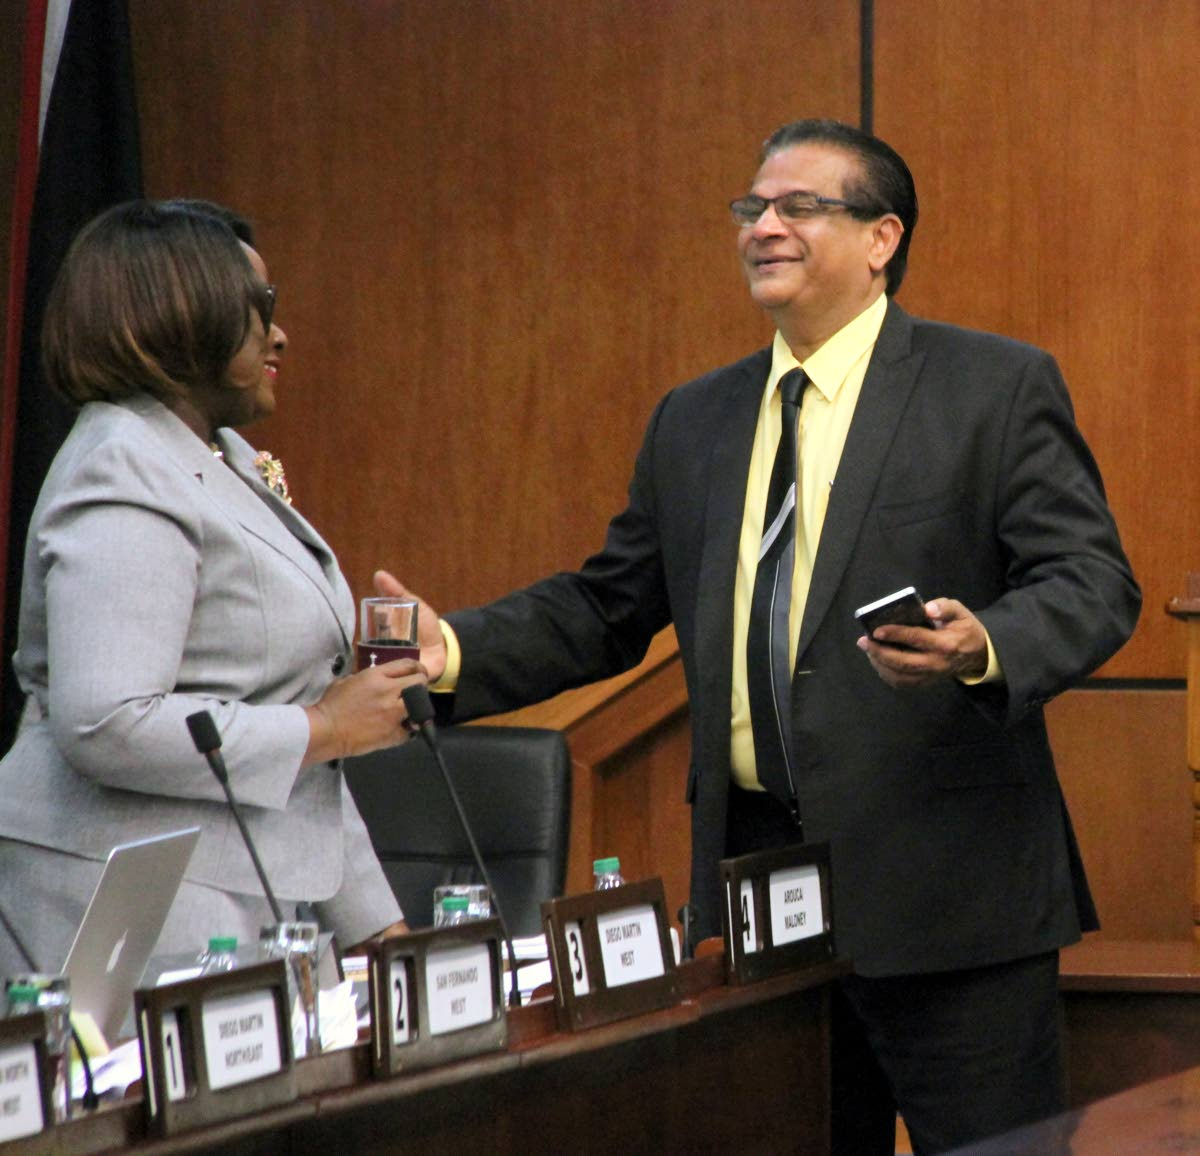 Minister of Planning Camille Robinson-Regis and Member of Parliament for San Juan/Barataria Faud Khan share a light moment during the budget debate yesterday. PHOTO BY SUREASH CHOLAI.